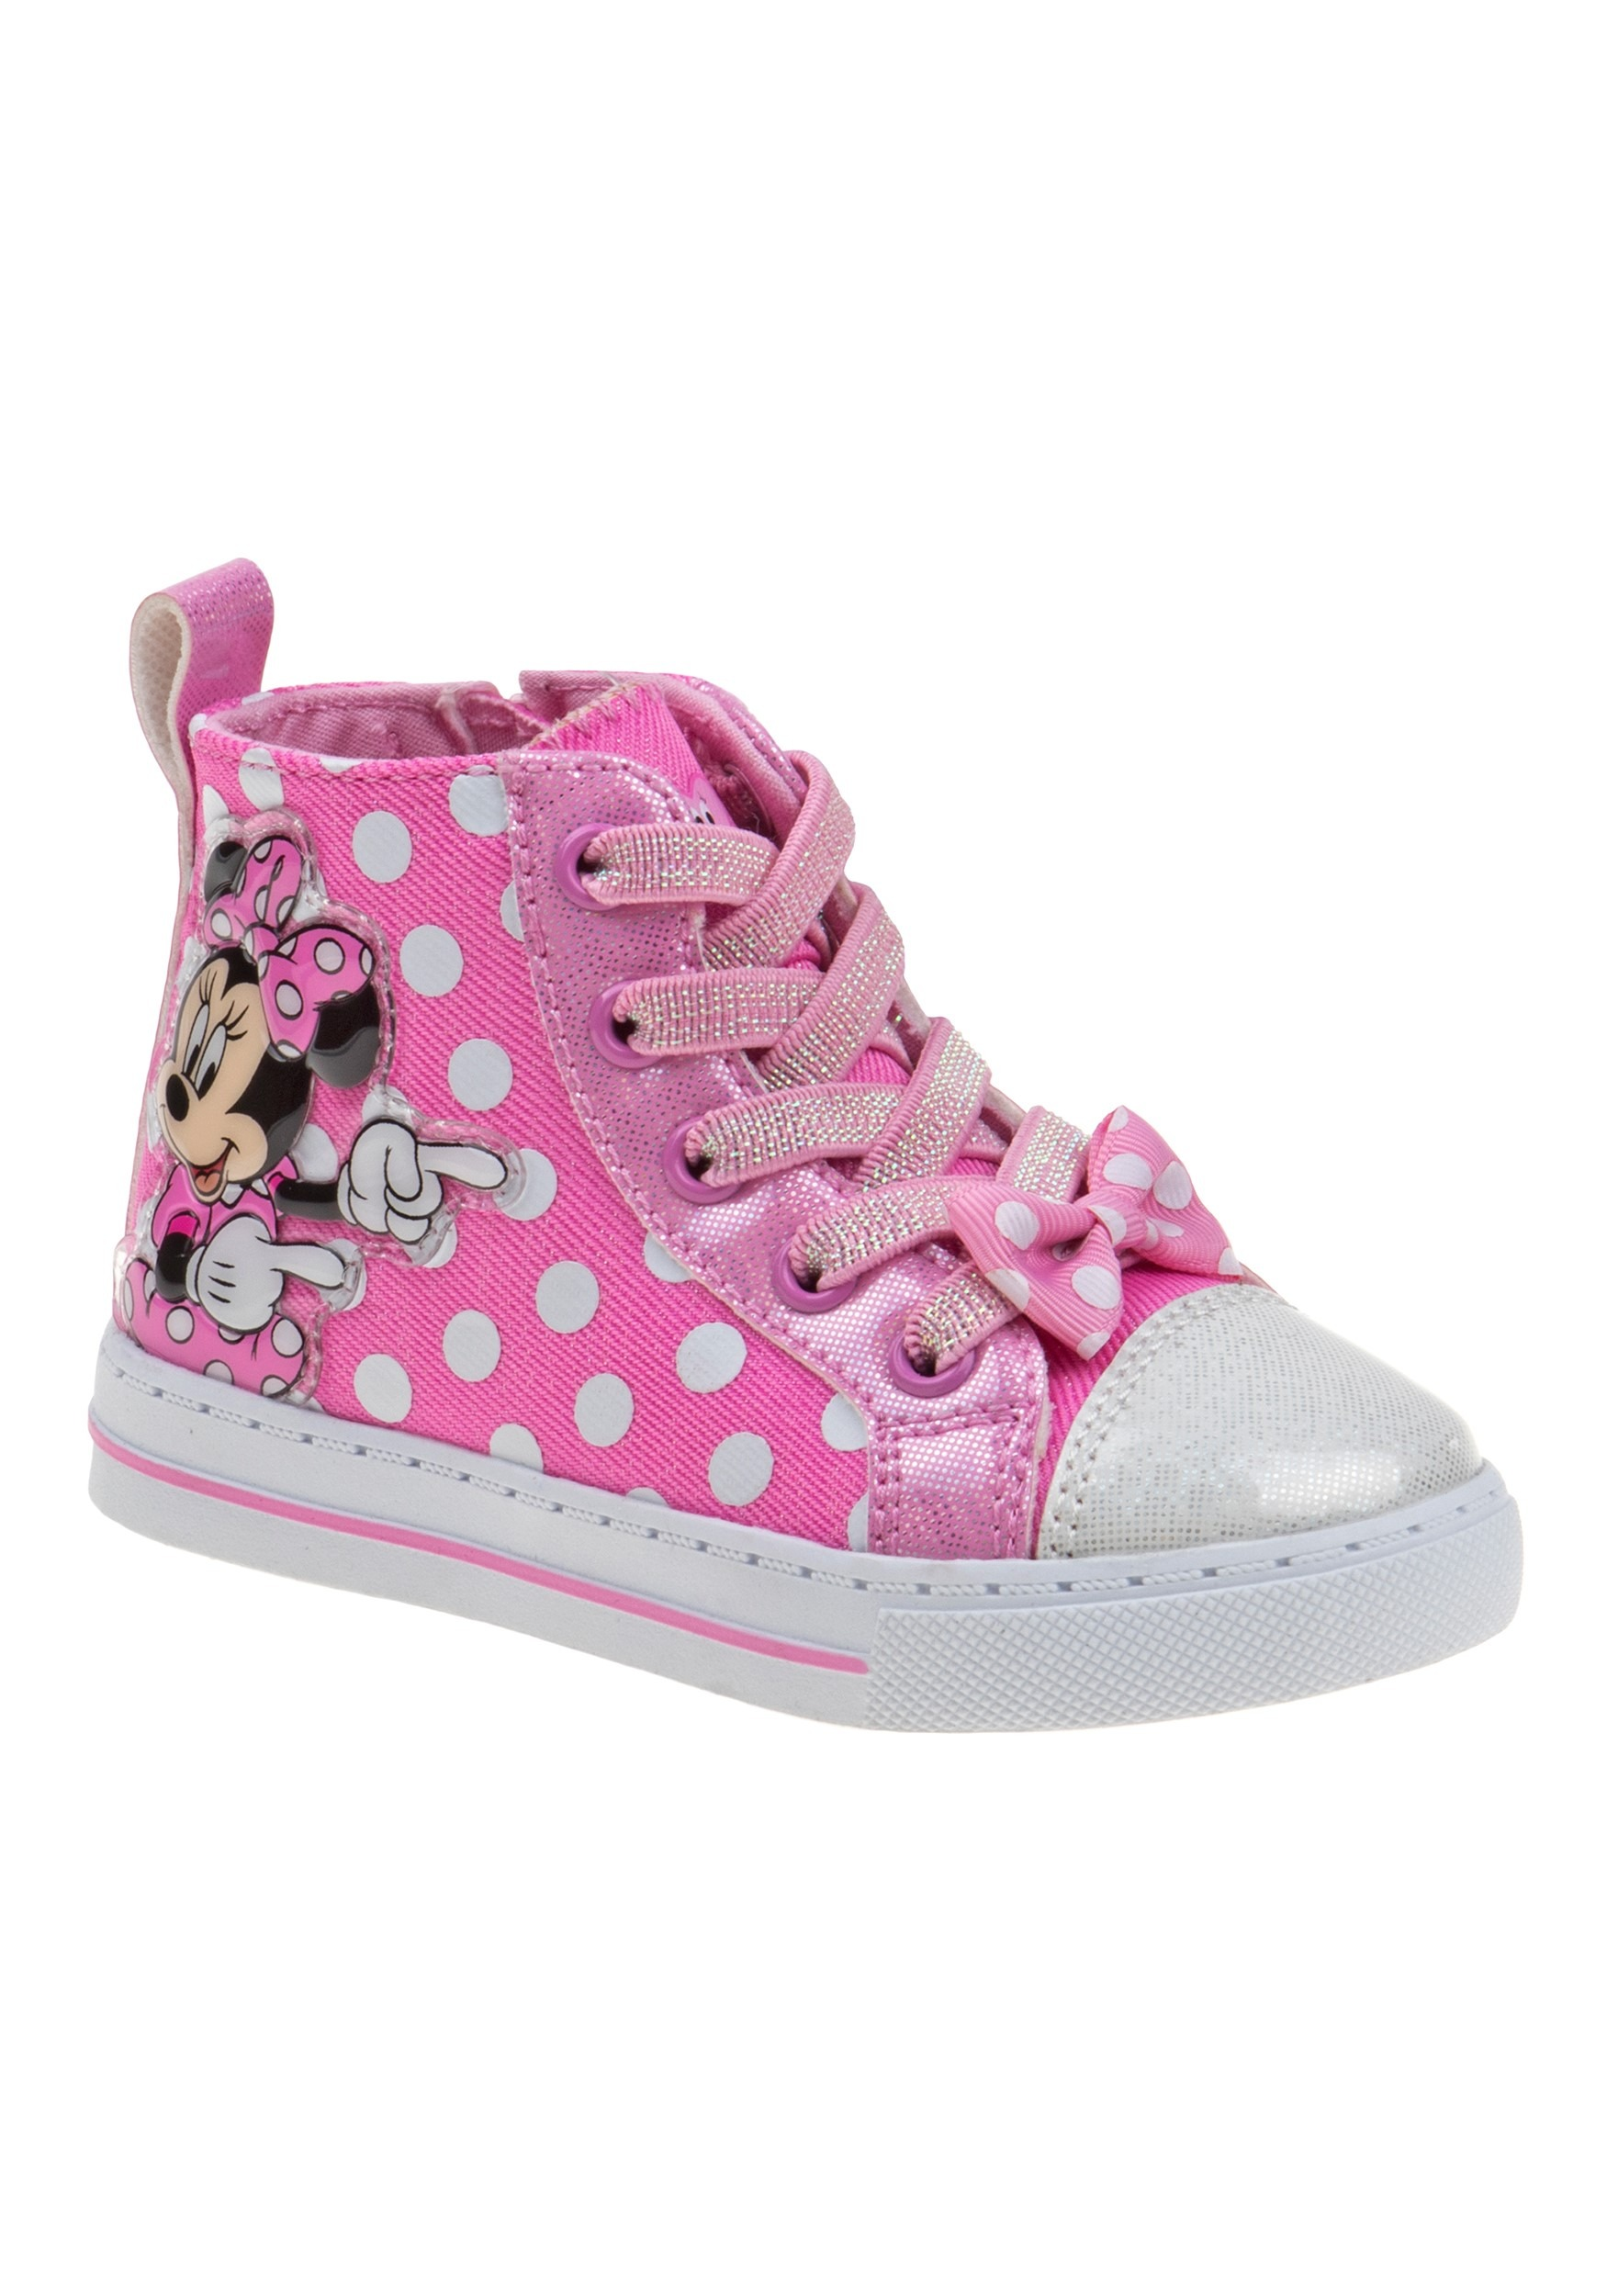 Disney Minnie Mouse Pink Polka Dot Girls Sneakers